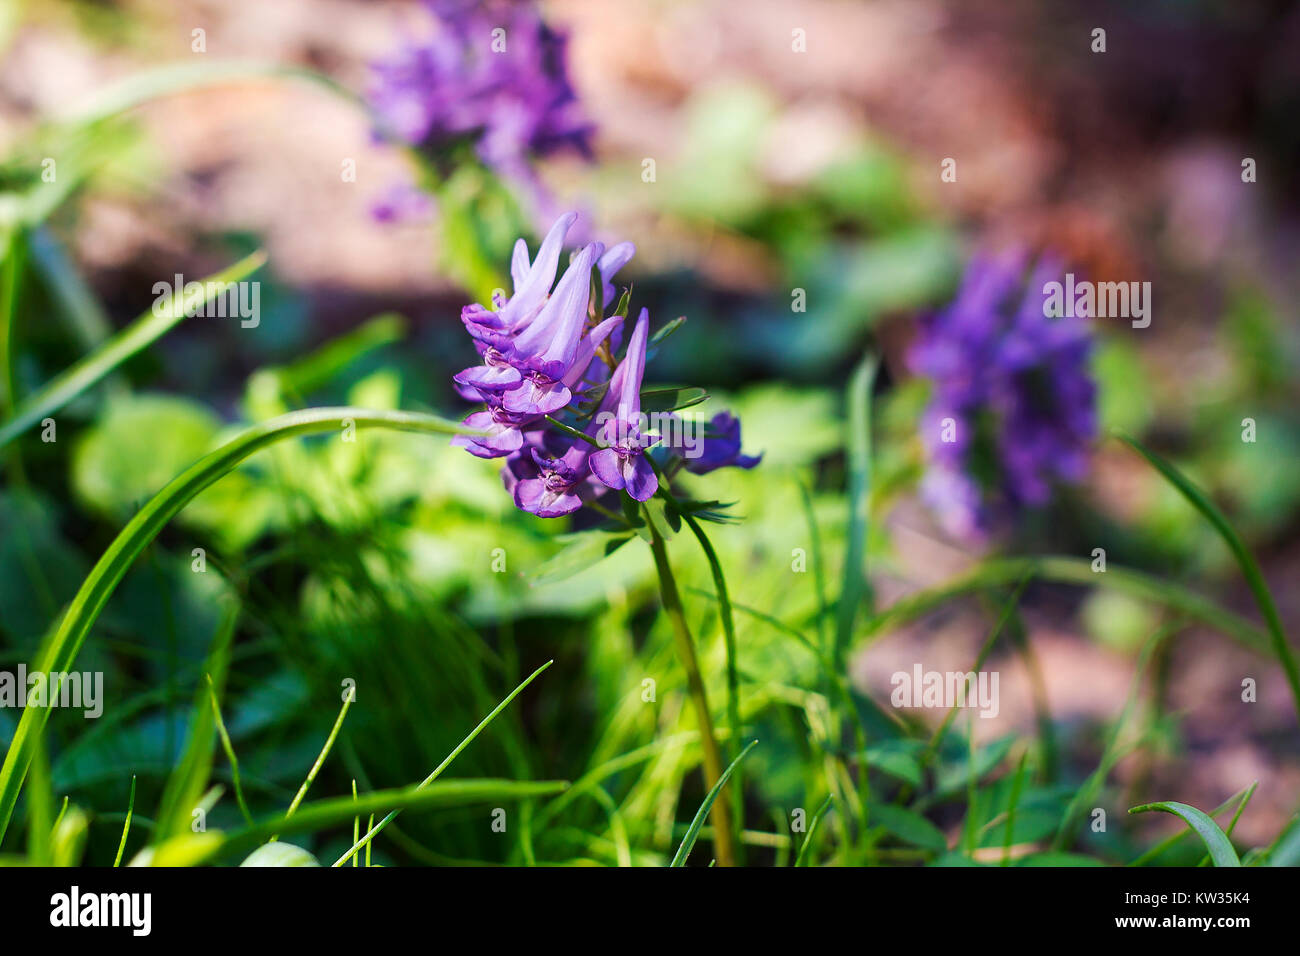 Small Early Purple Flowers Corydalis In Green Grass Side View Stock